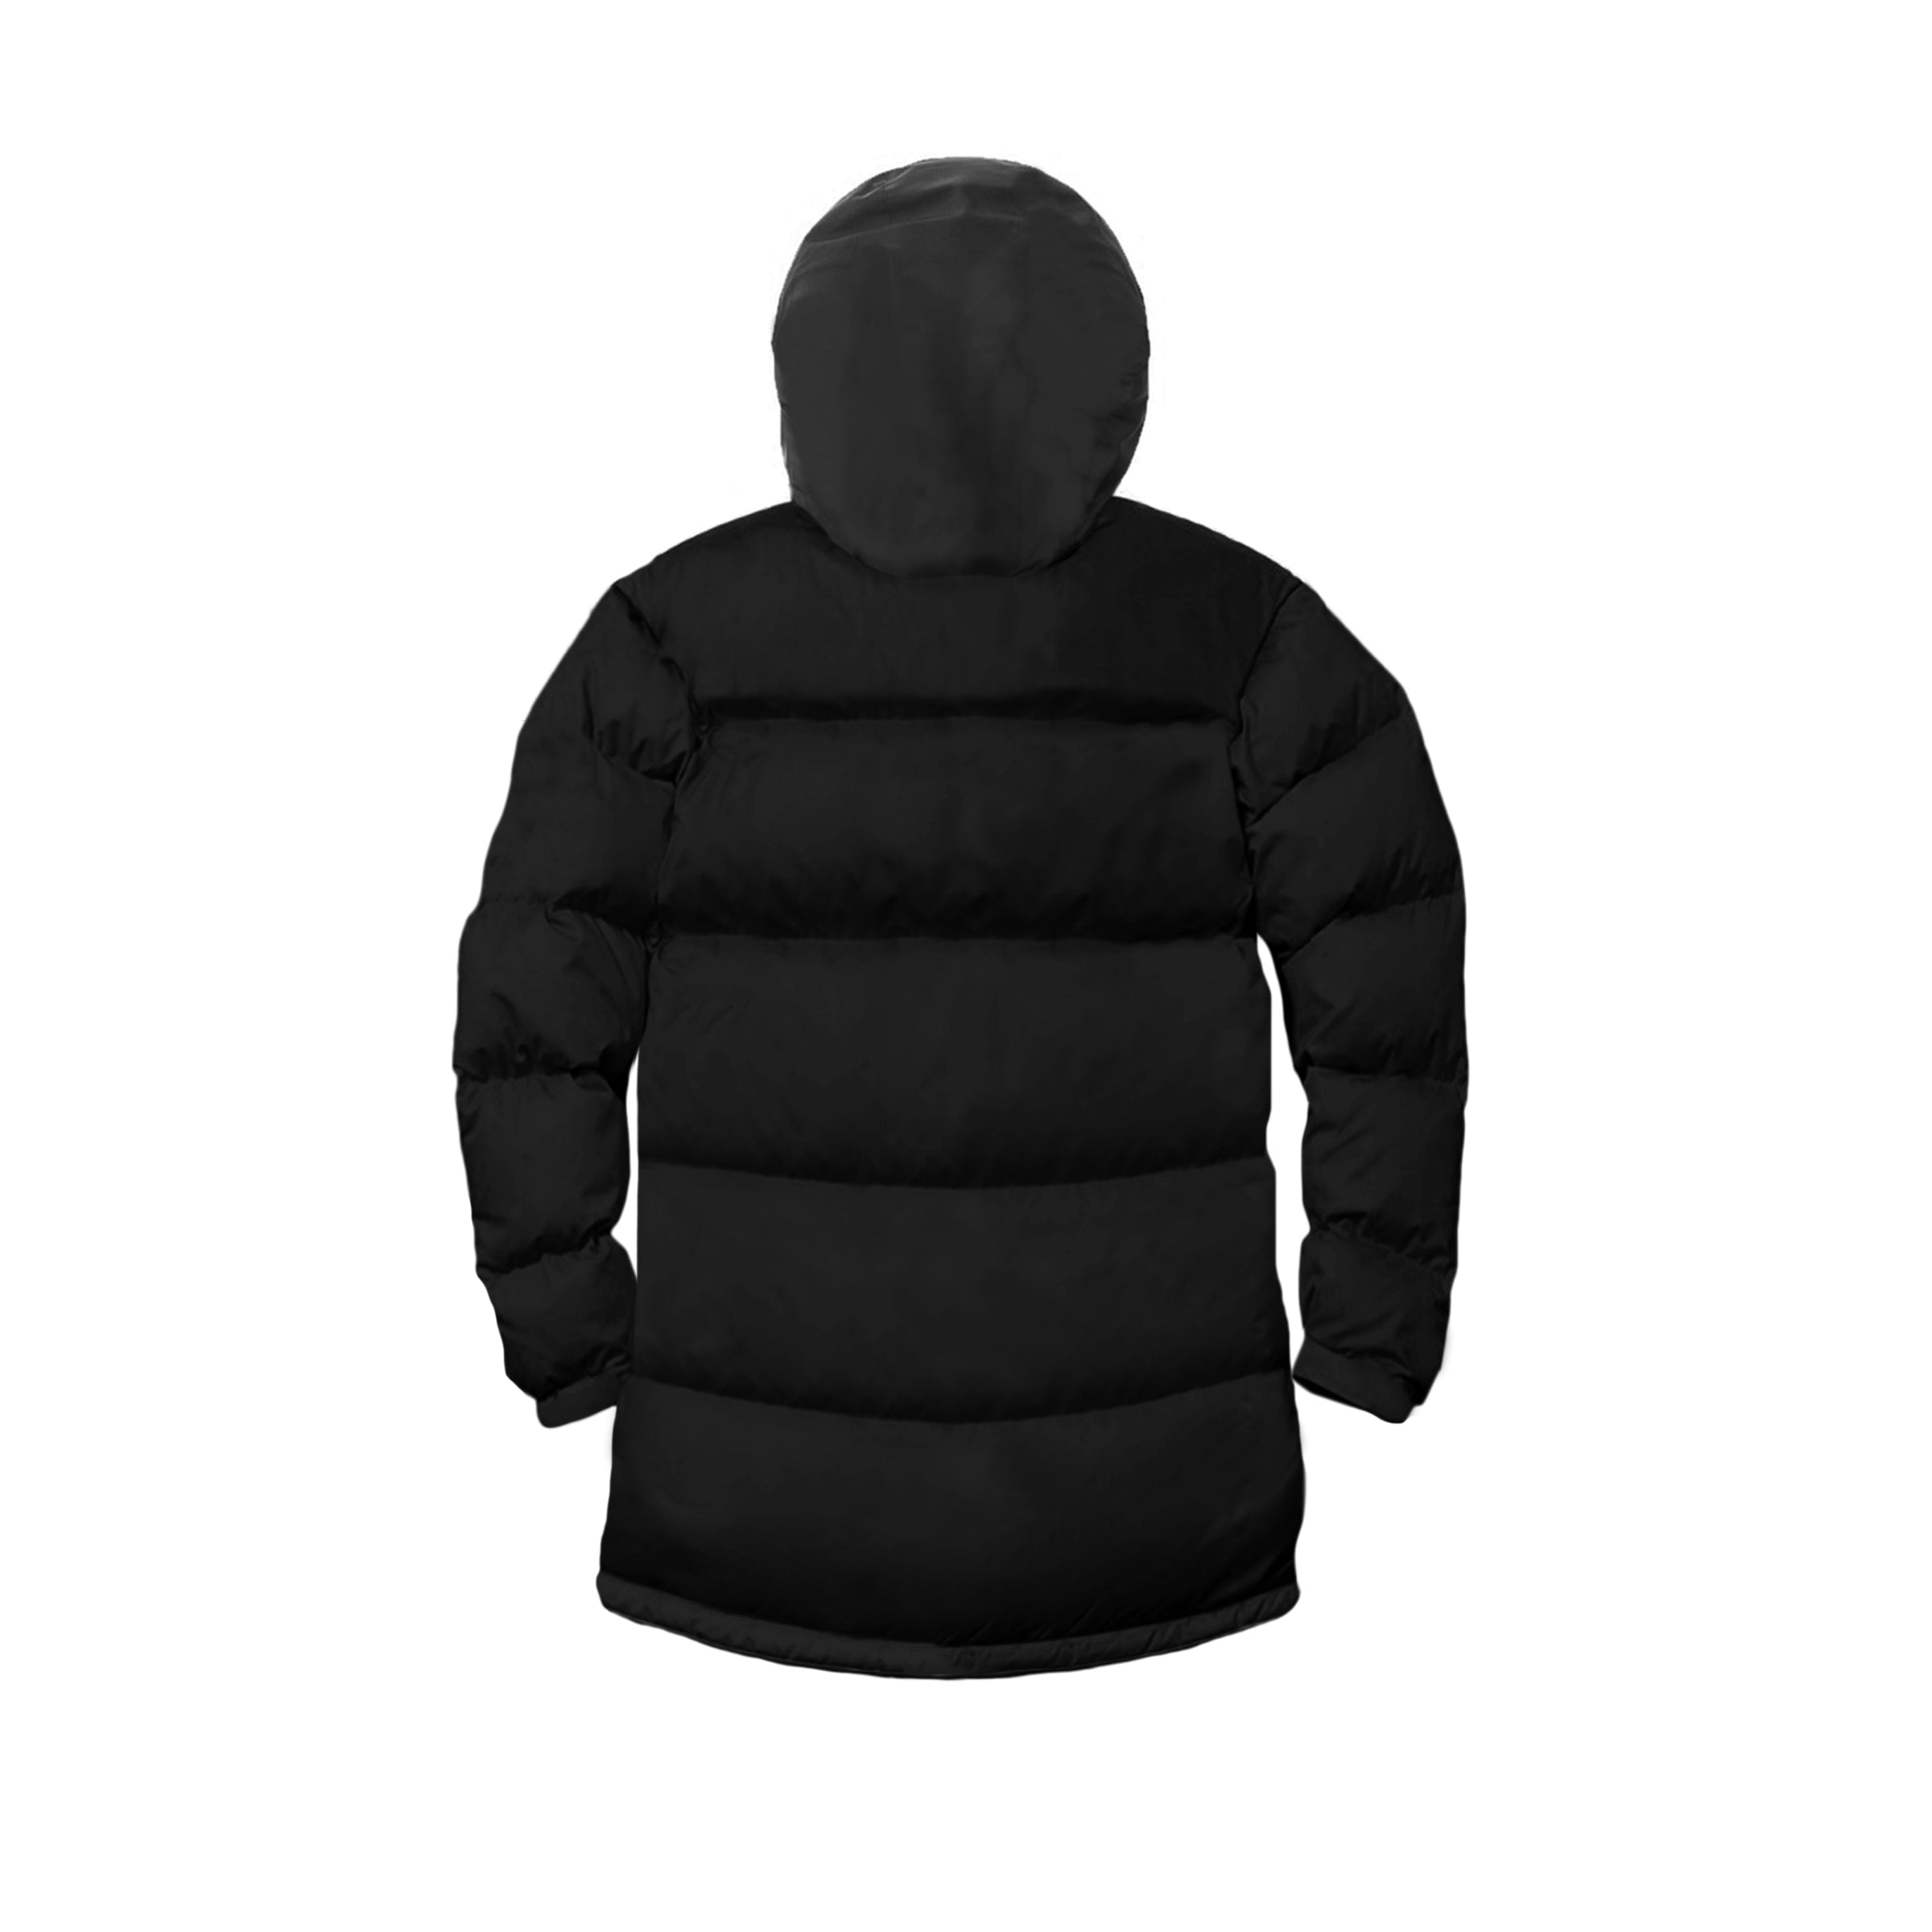 Puffer Jacket - Black image 9